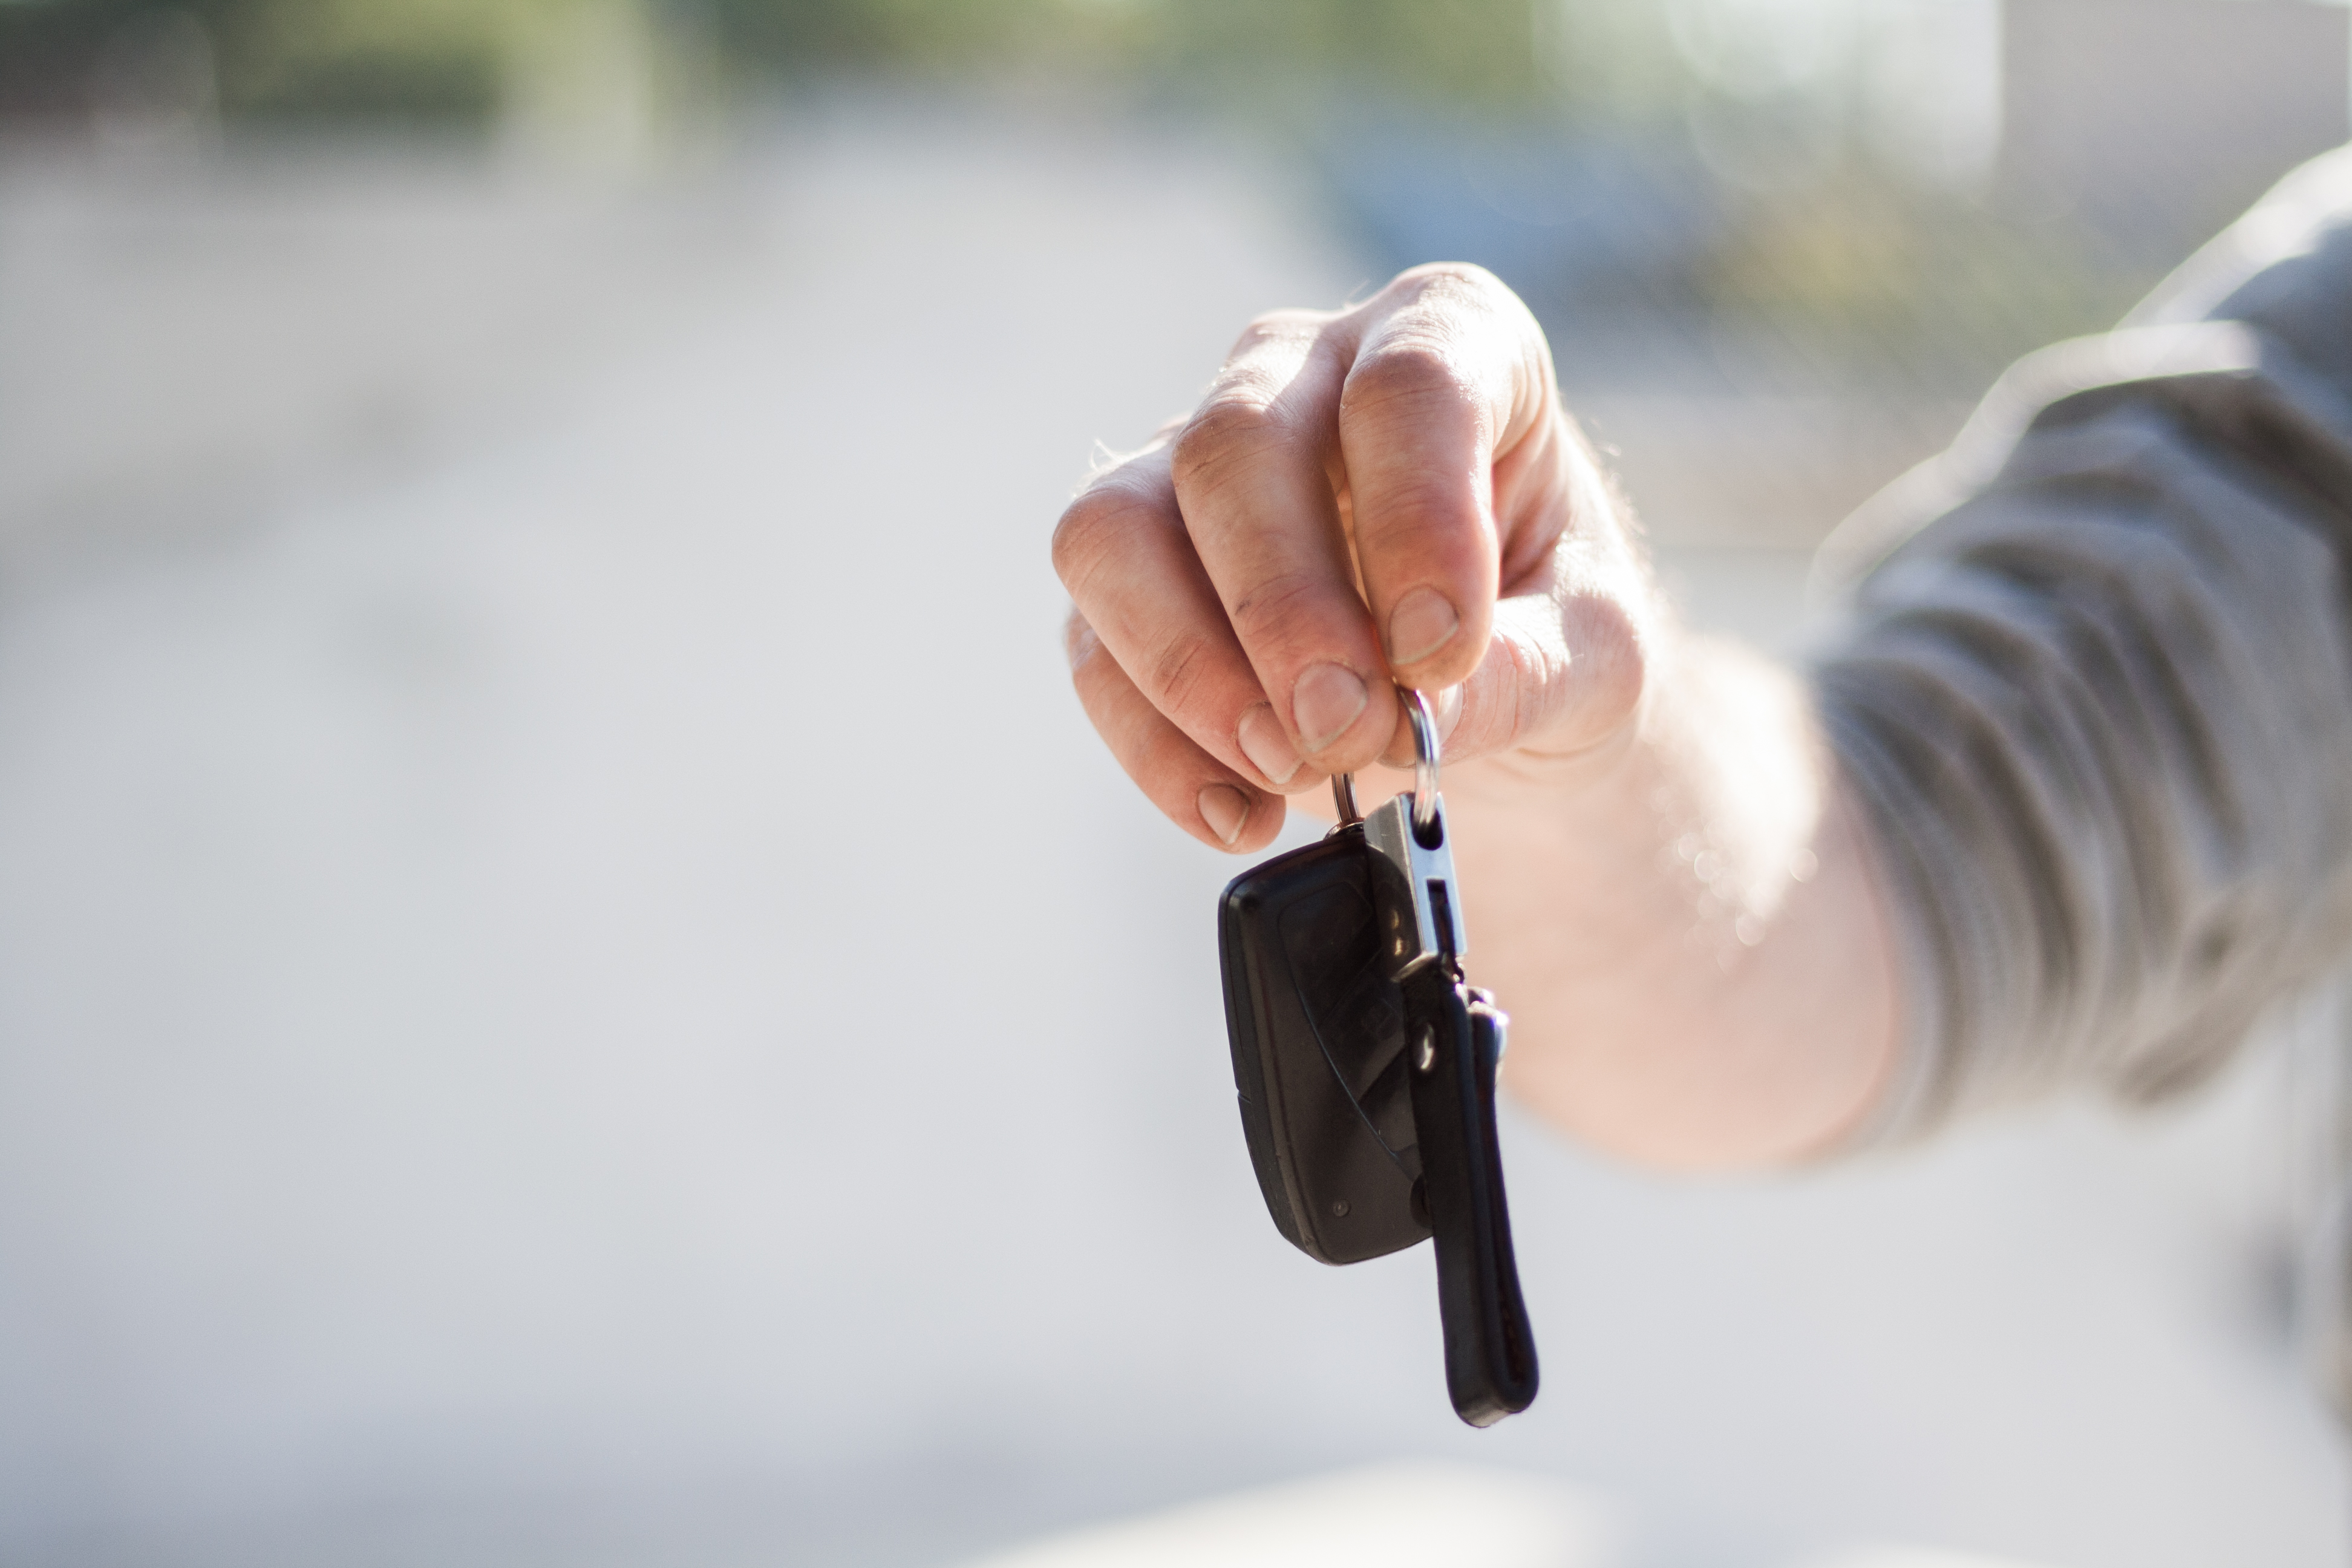 selling your car for a good price can be easy